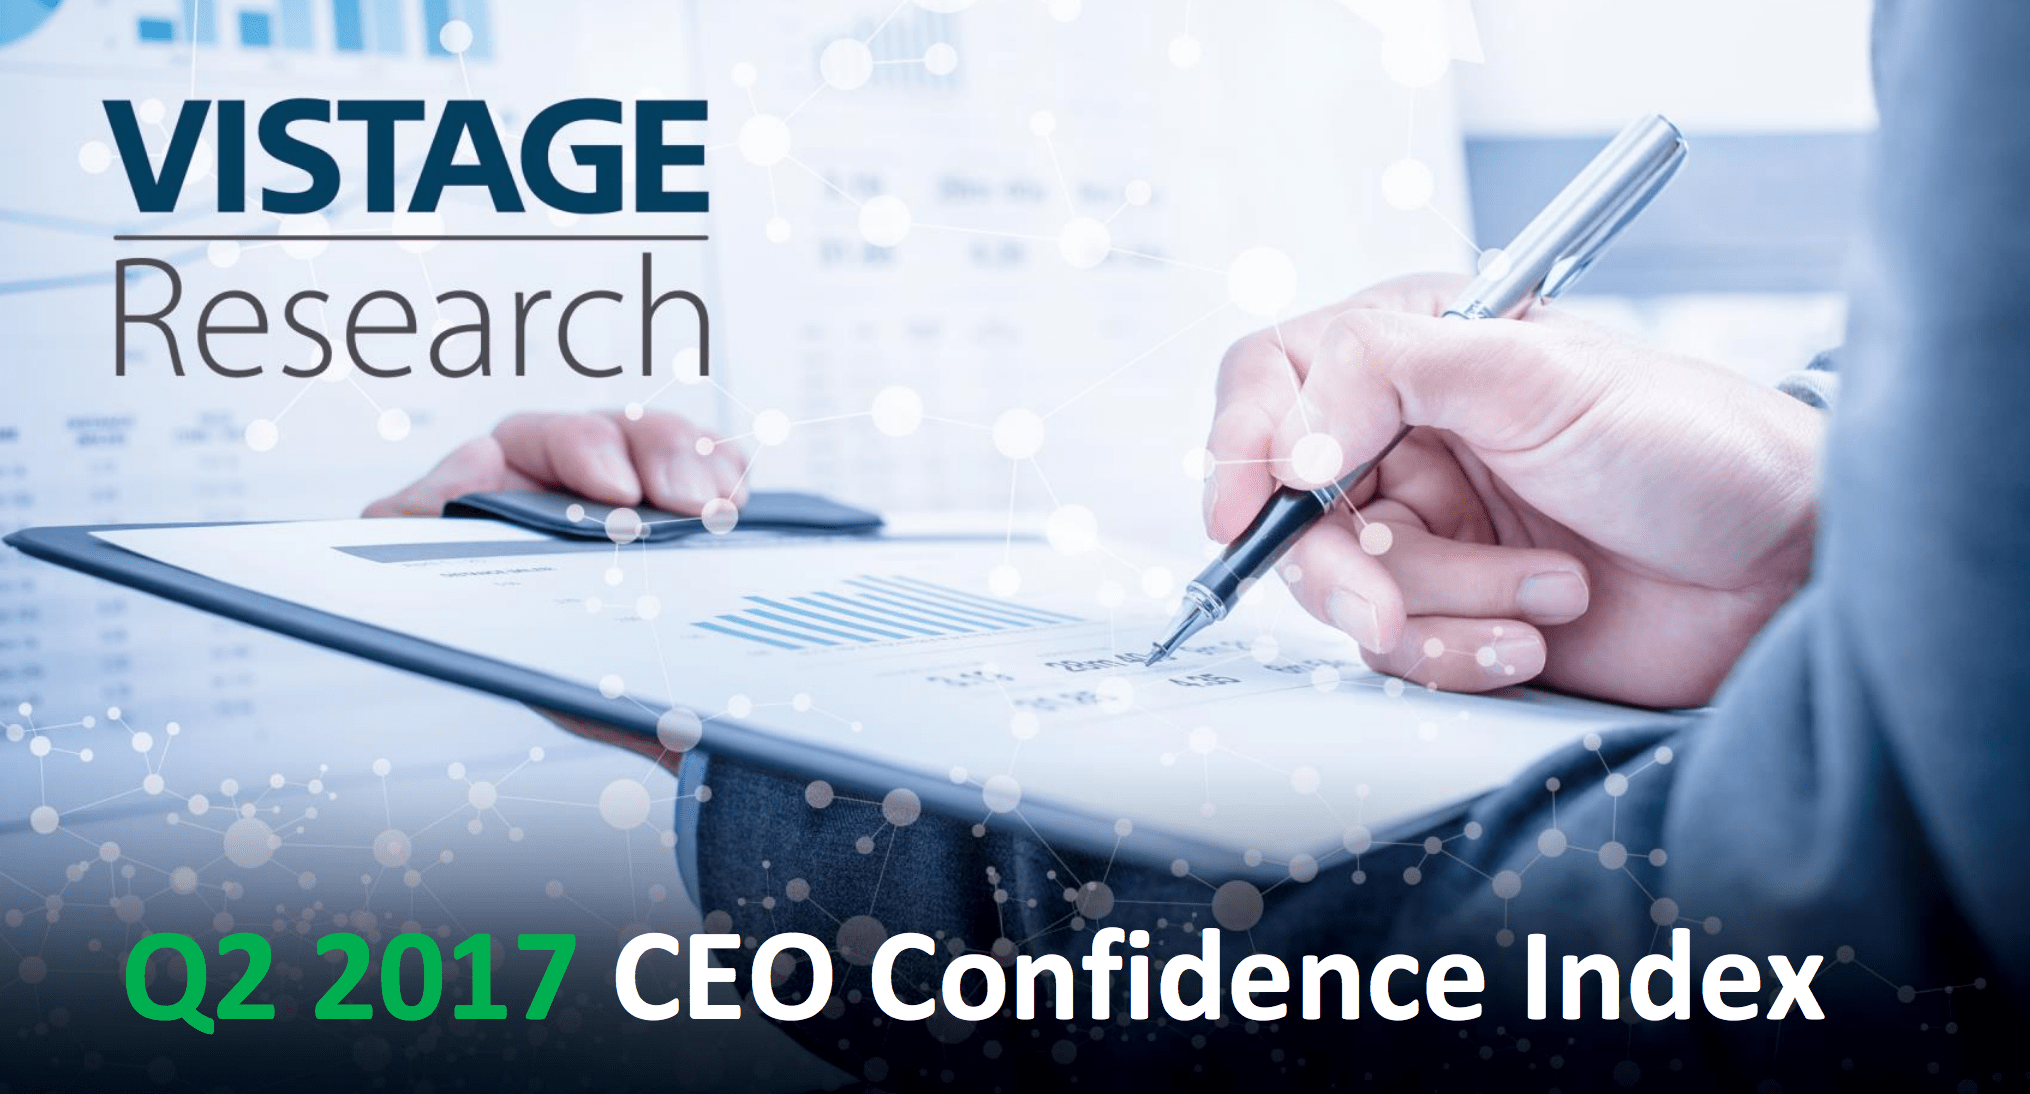 vistage q2 ceo confidence index